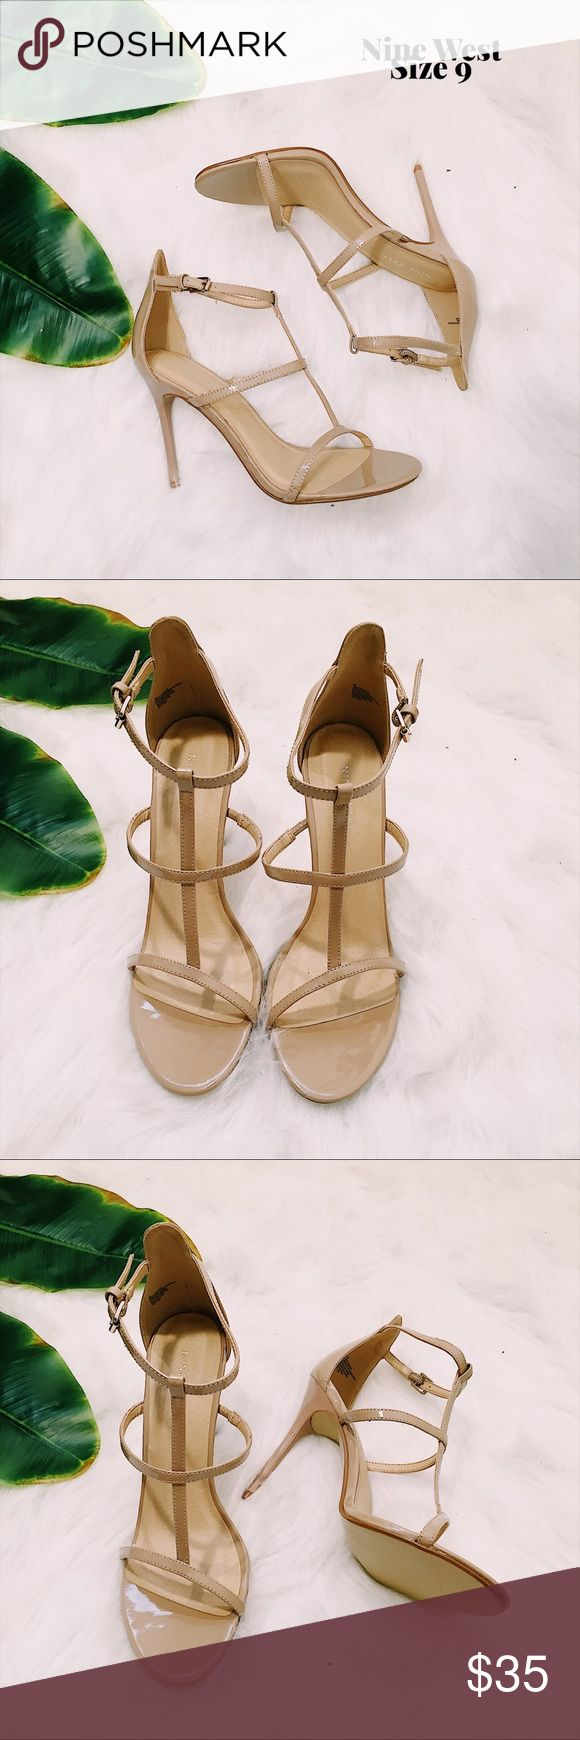 Nine West Natural Sweet as Pie T-Strap Sandals 9 Nine West Sweet as Pie nude t-strap heels  Size 9 Great, like new condition   📷 Please see all photos - we do our best to accurately capture condition, measurements & all blemishes in our photos 📷   🌼 Smoke/pet free home 🌼  🌸 All clothing is freshly laundered before shipment. 🌸  ✨ Reasonable Offers Accepted ✨ Nine West Shoes Heels